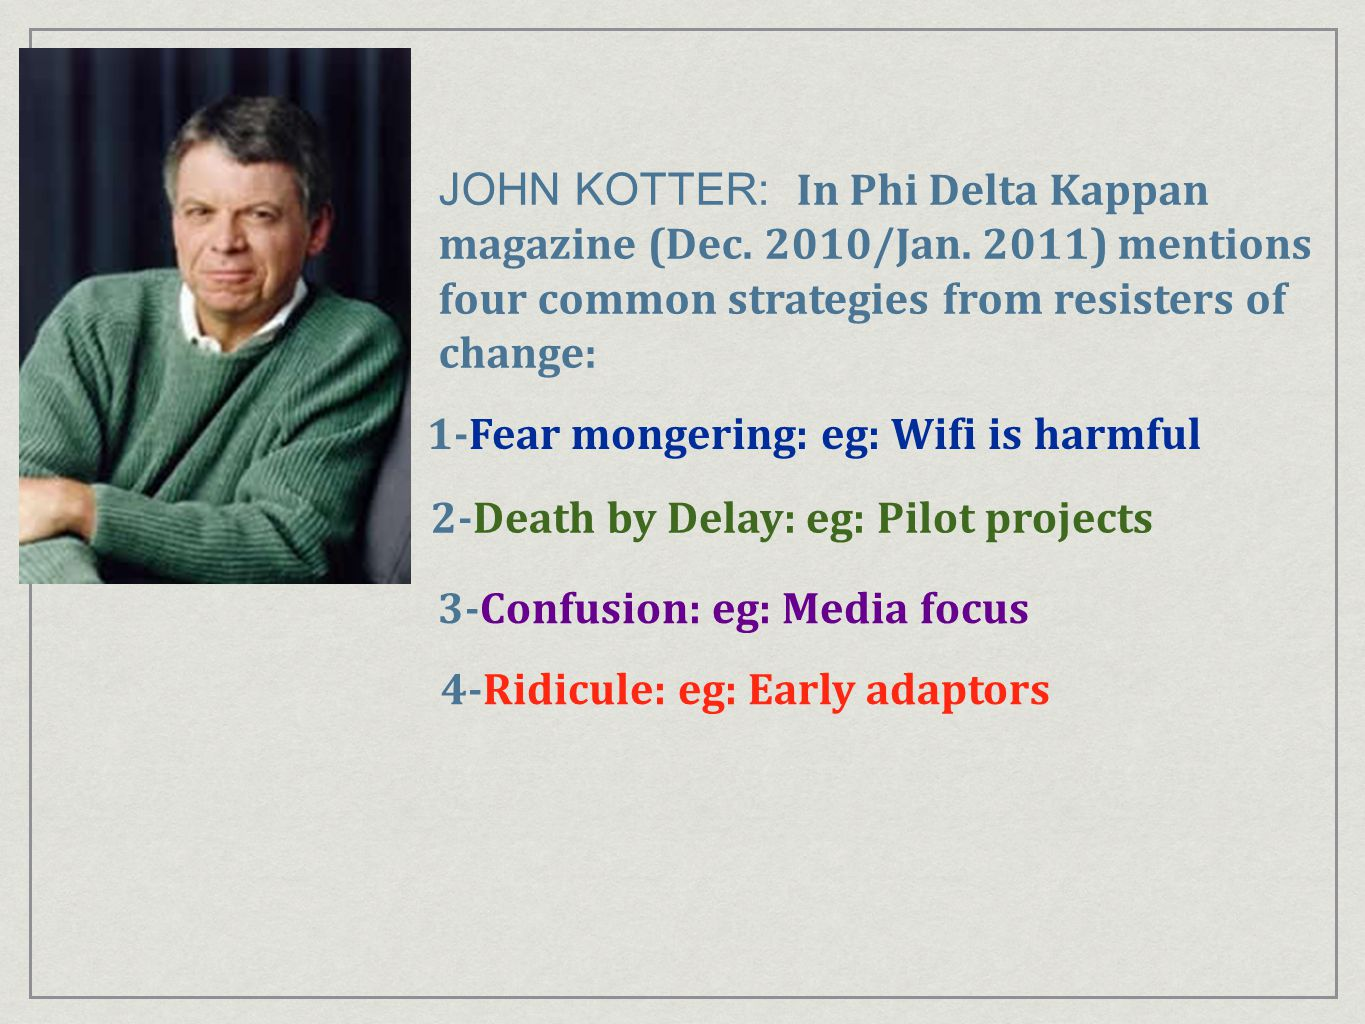 JOHN KOTTER: In Phi Delta Kappan magazine (Dec. 2010/Jan.